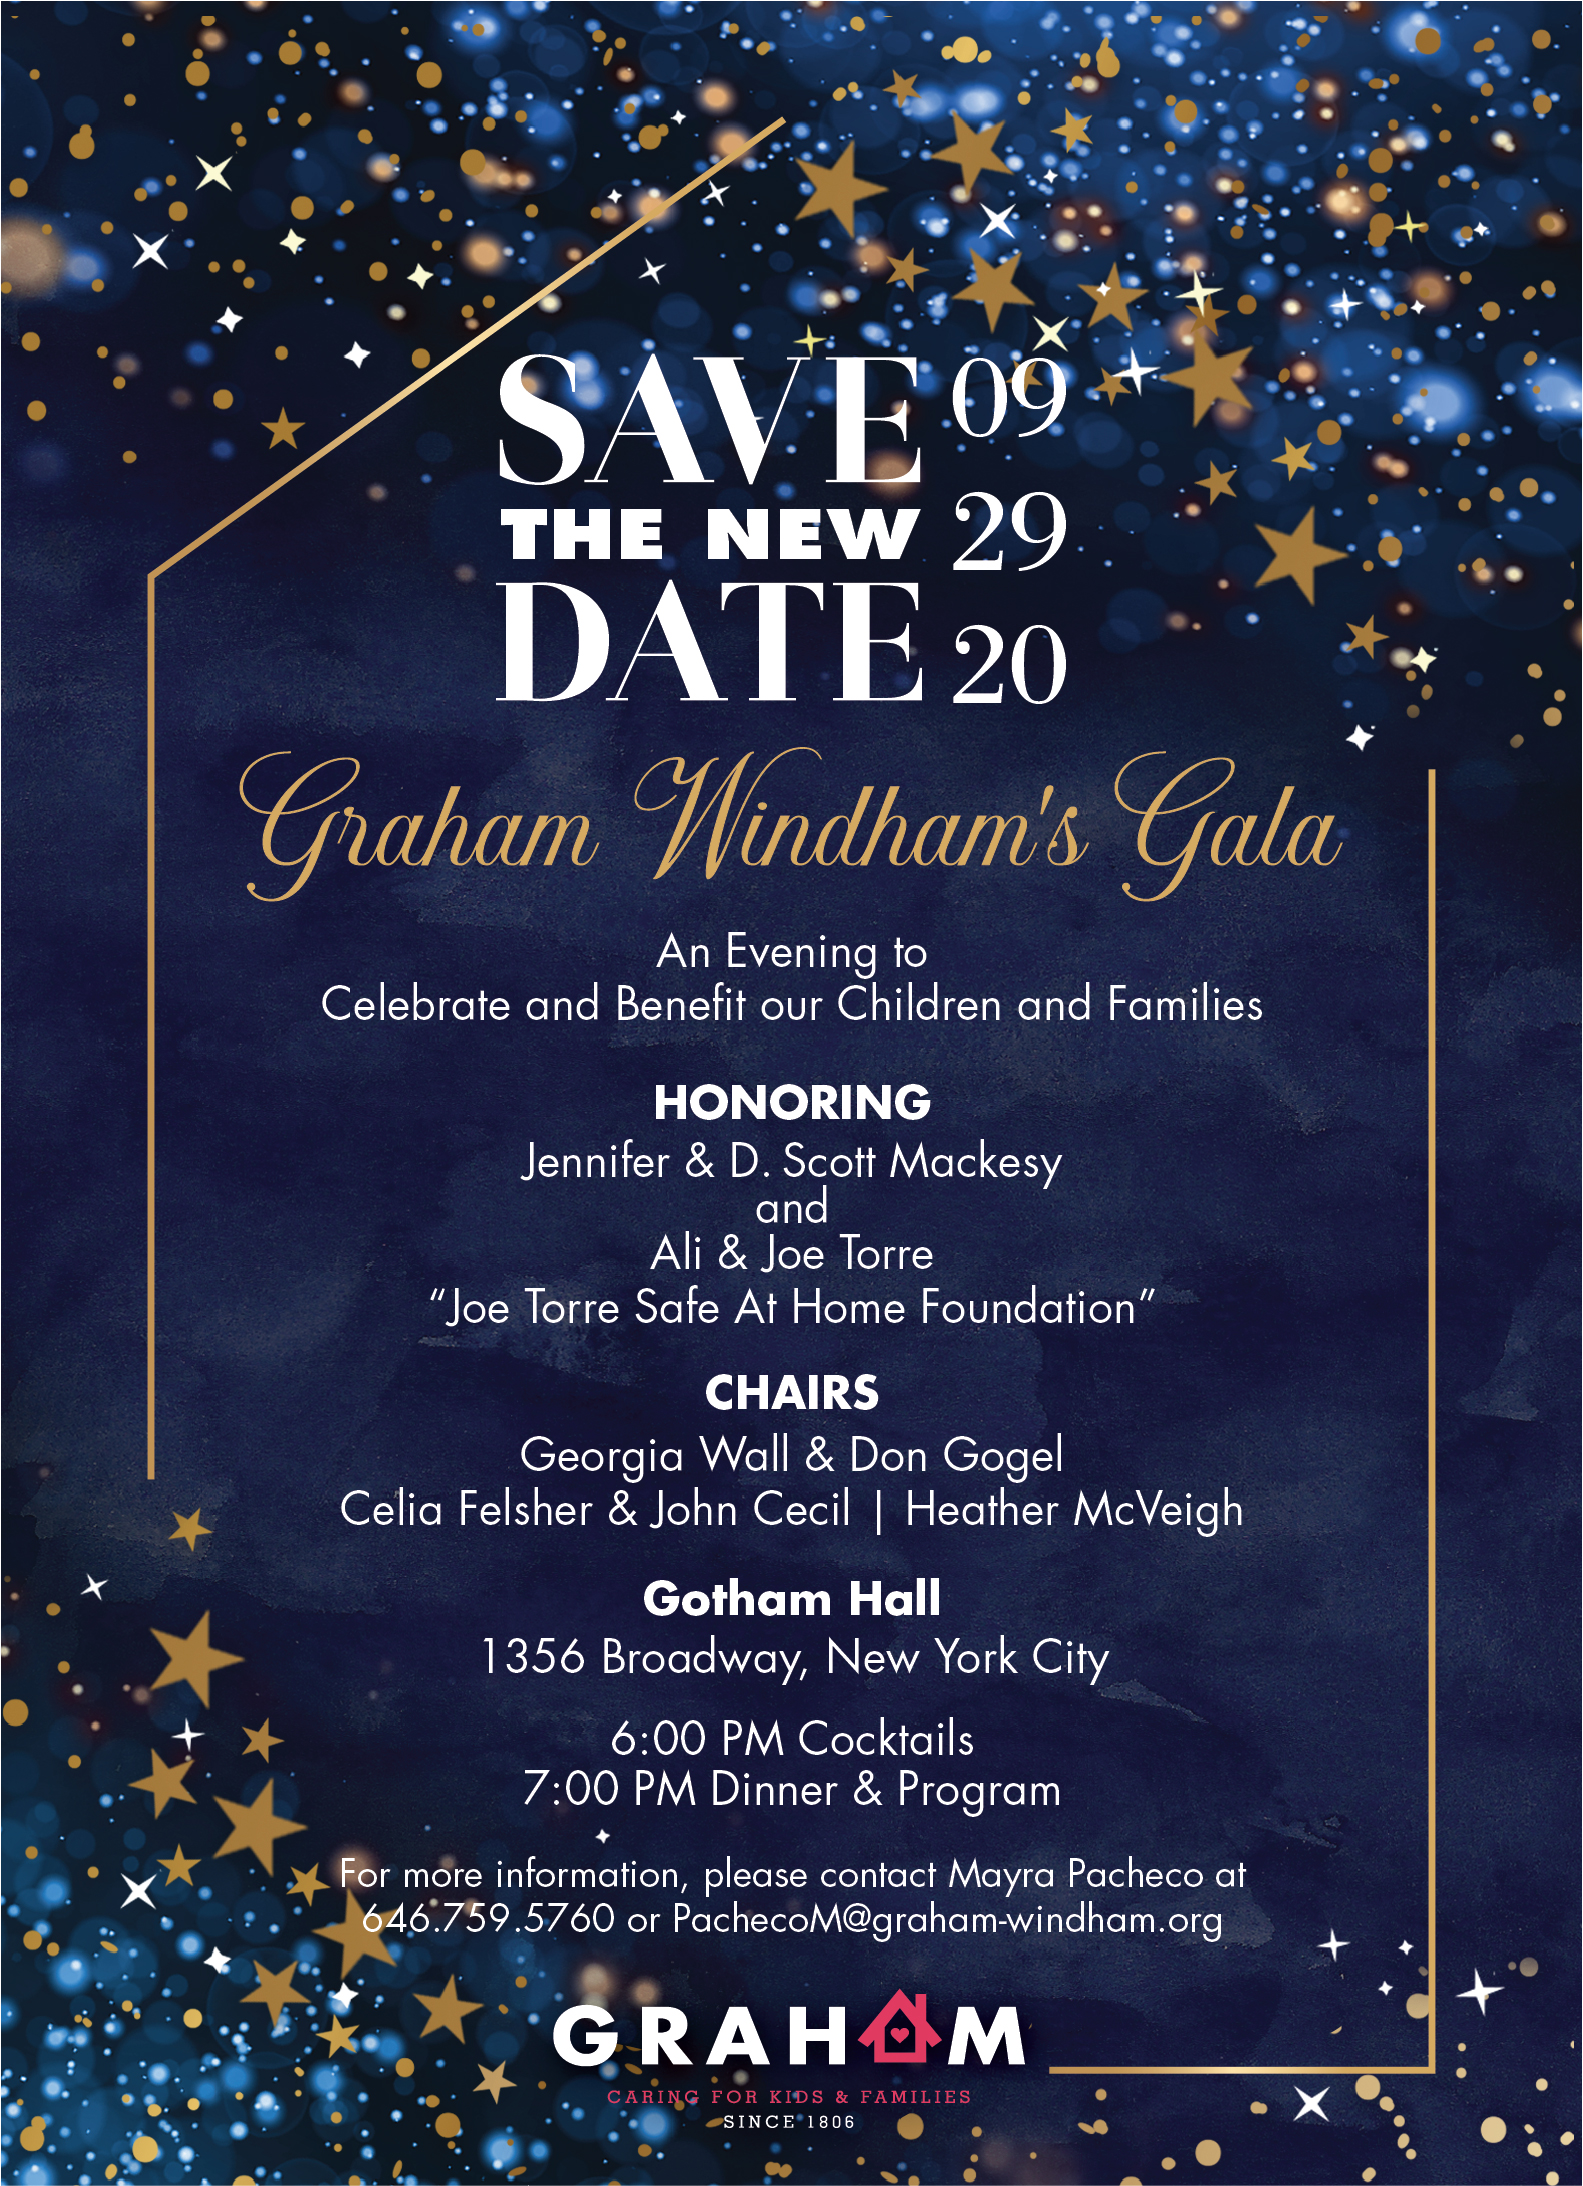 Christmas Dinner In New York City 2020 NEW DATE: 2020 Graham Windham Gala Celebration Dinner | New York